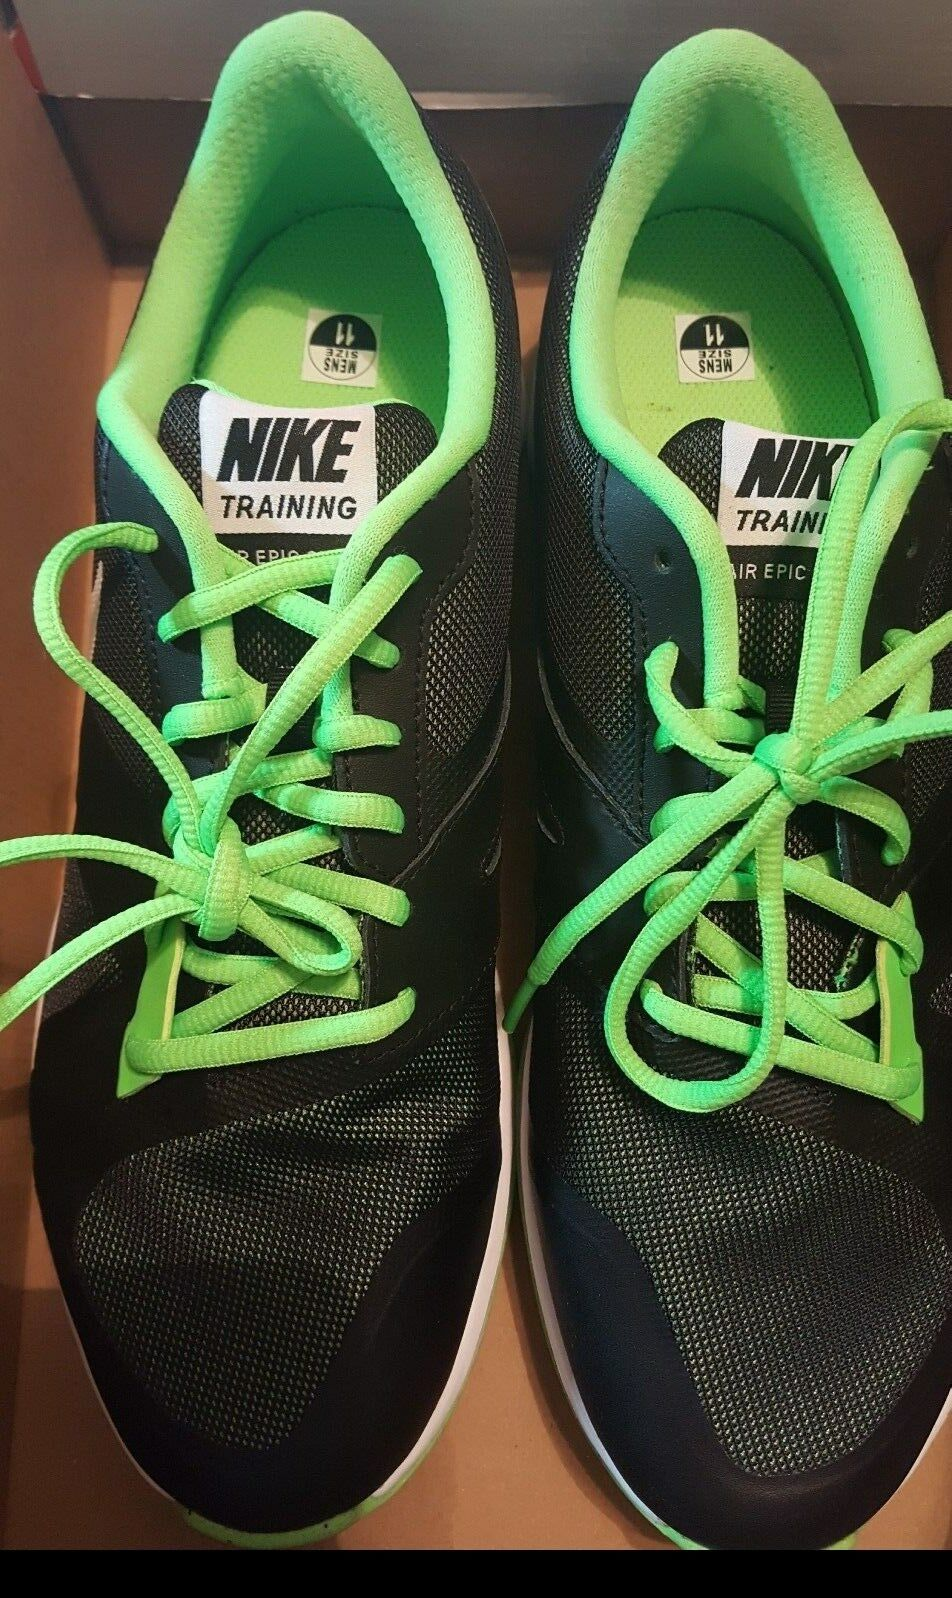 Mens, Nike, Training/Running Shoes, Black/White/Voltage Green, Comfortable Cheap women's shoes women's shoes